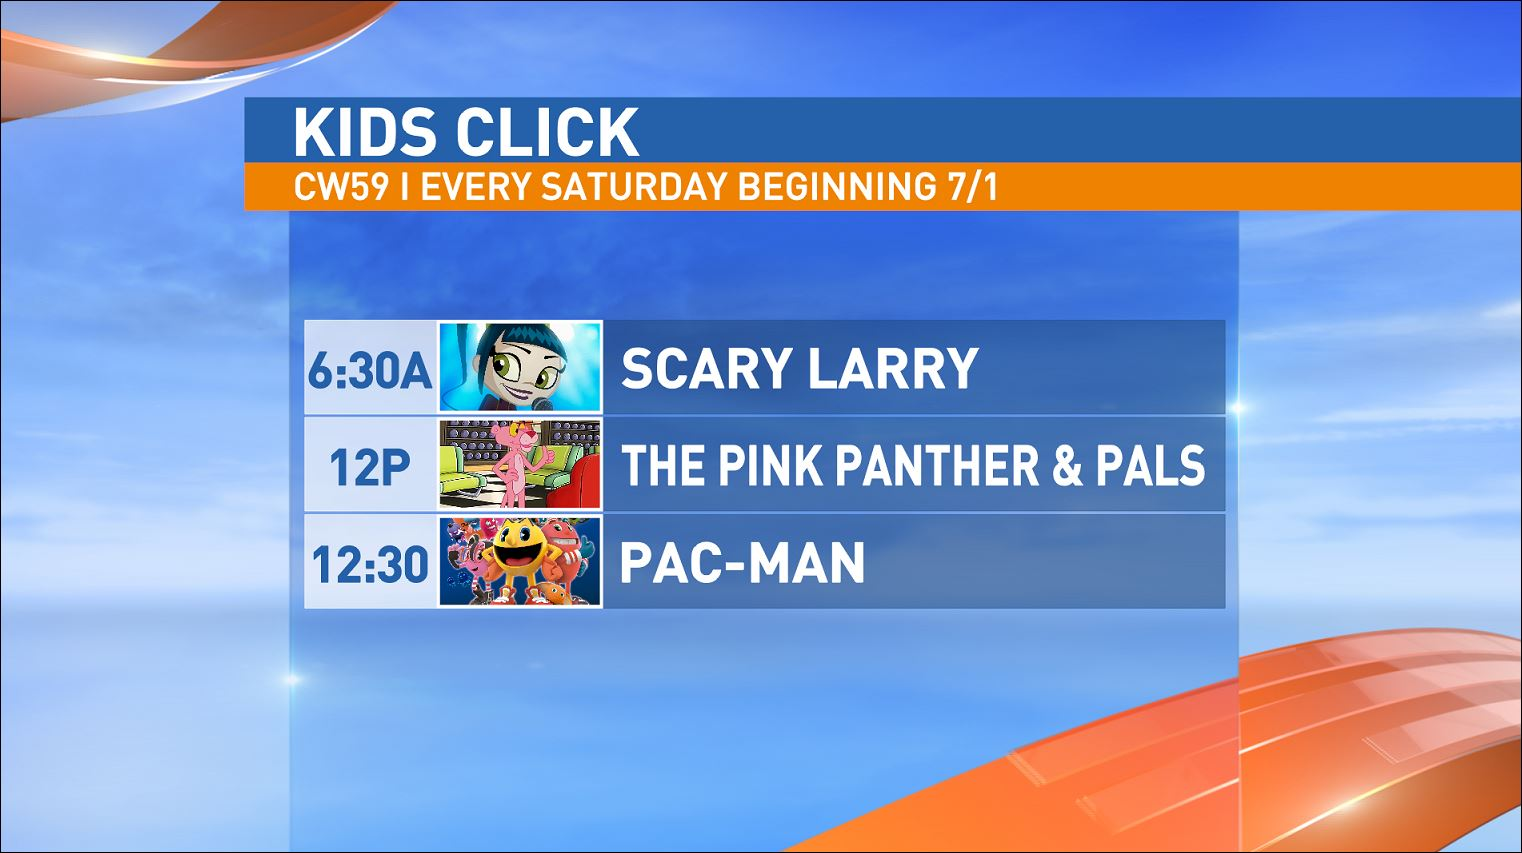 6:30 a.m. Scary Larry / Noon - The Pink Panther & Pals / 12:30 p.m. Pac-Man